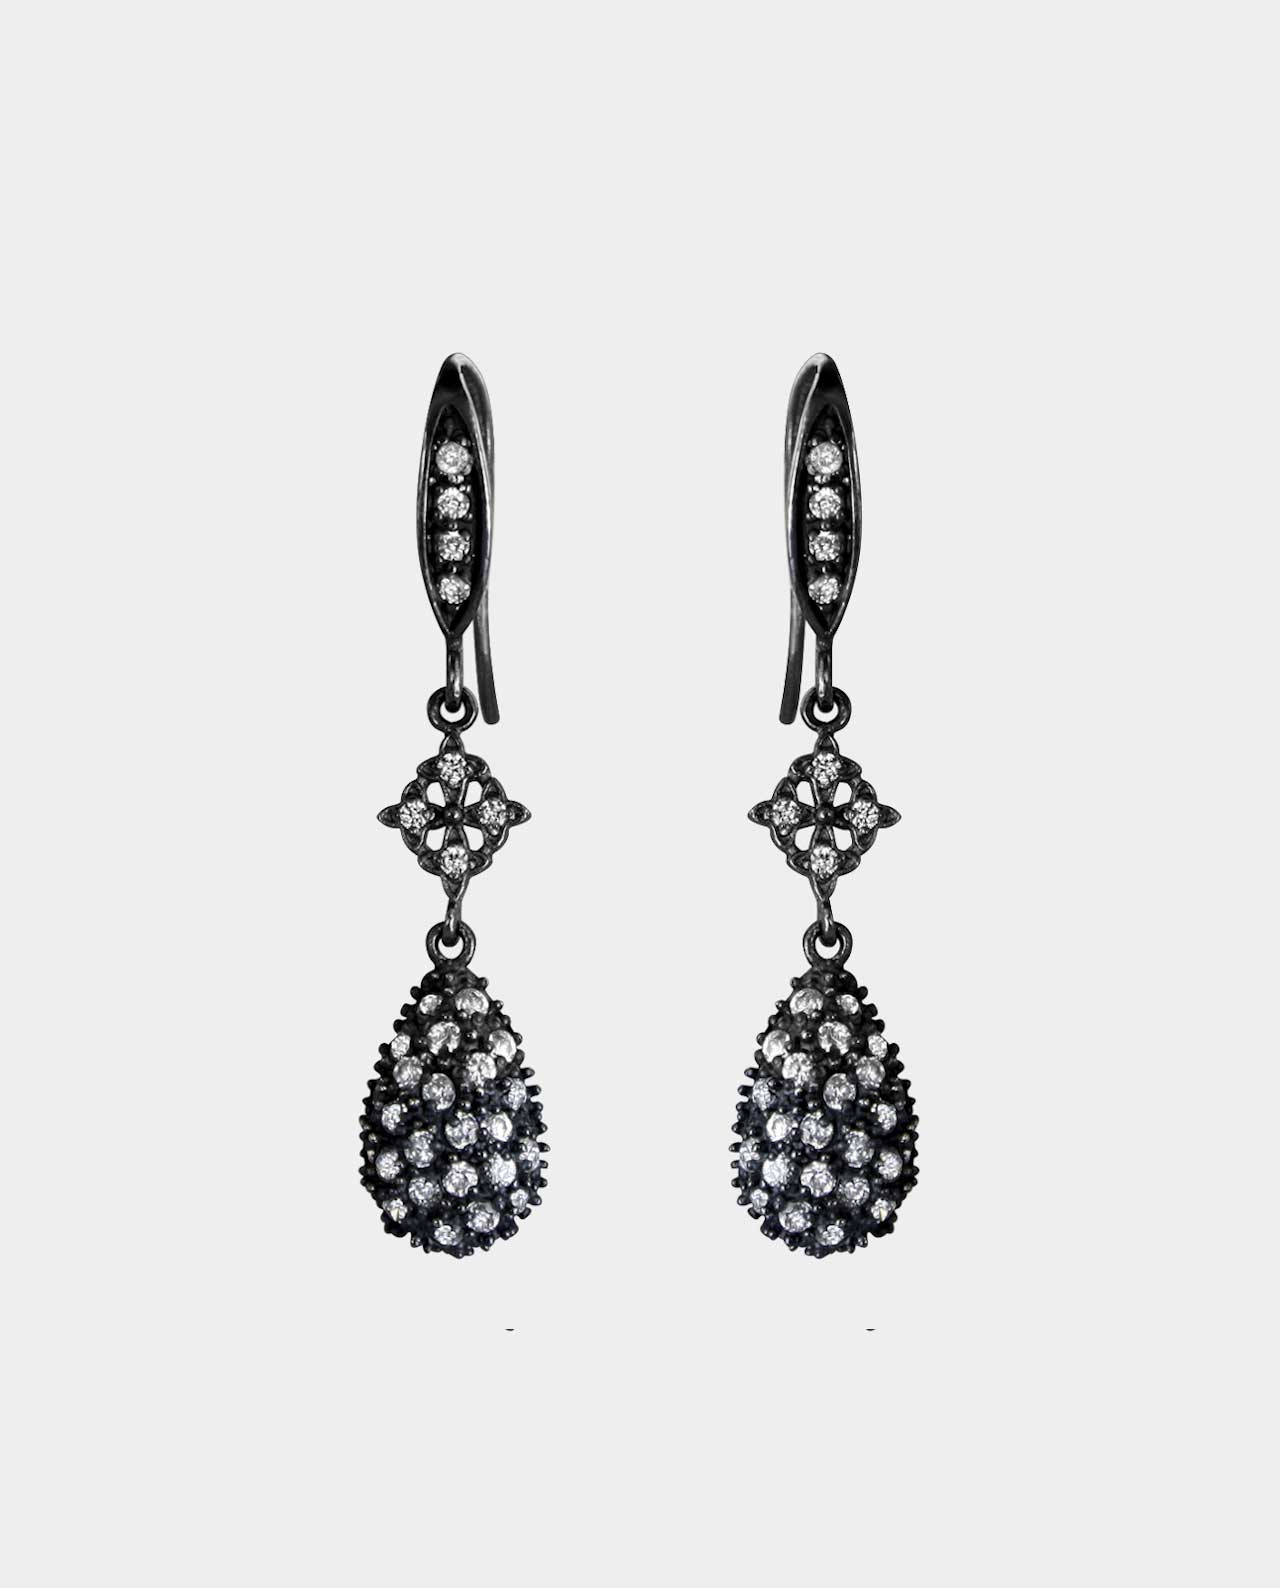 Earrings in oxidized sterling silver adorned with dozens of sparkling zirconias highlight your beautiful look without the use of superfluous ornamentation which adds a subtle touch of class